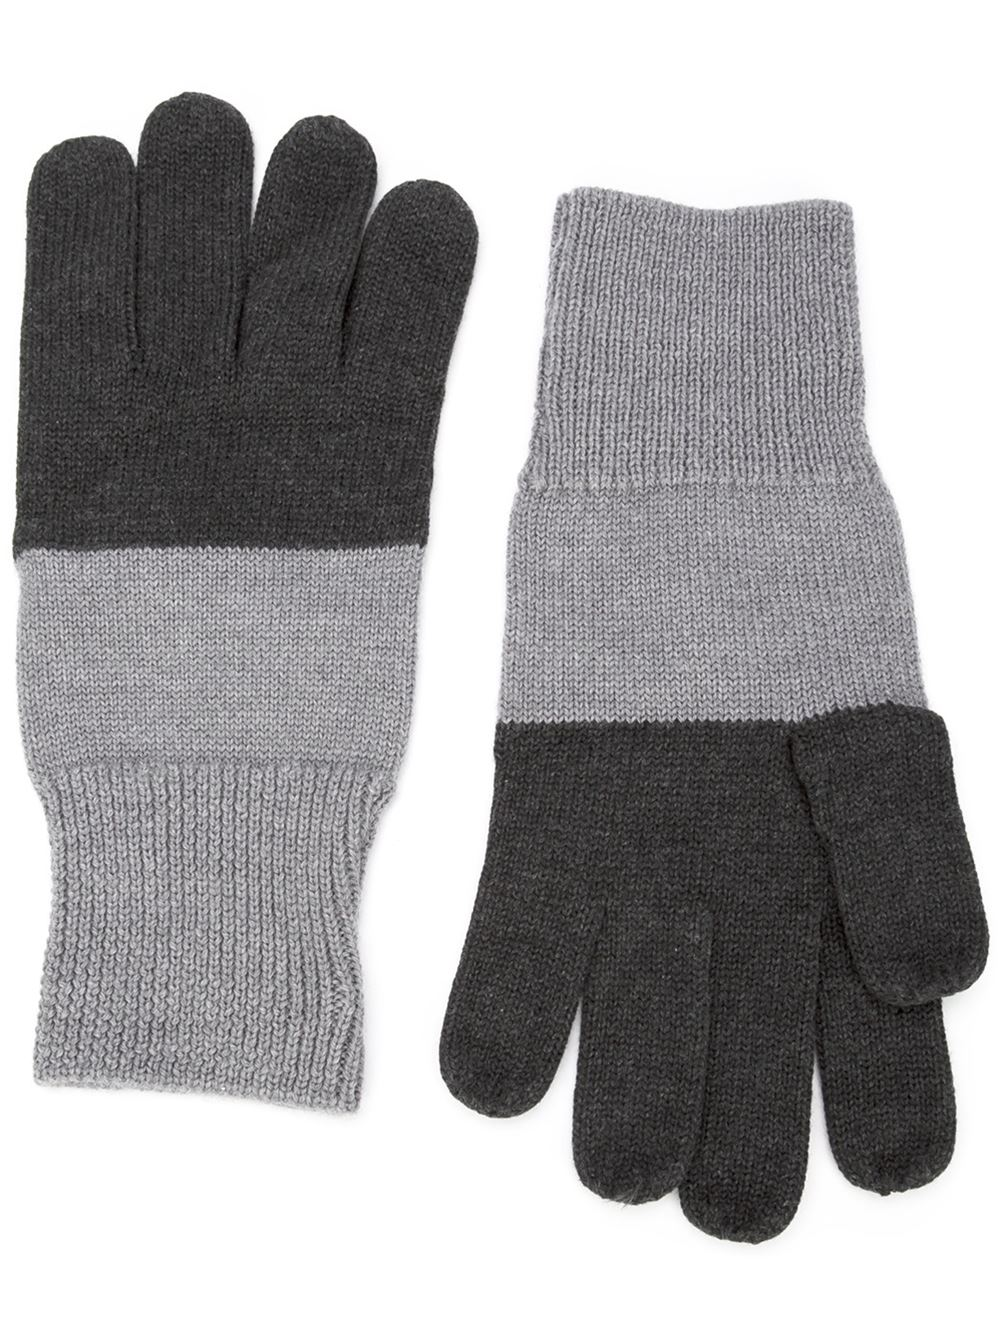 Colour Block Gloves by Maison Margiela